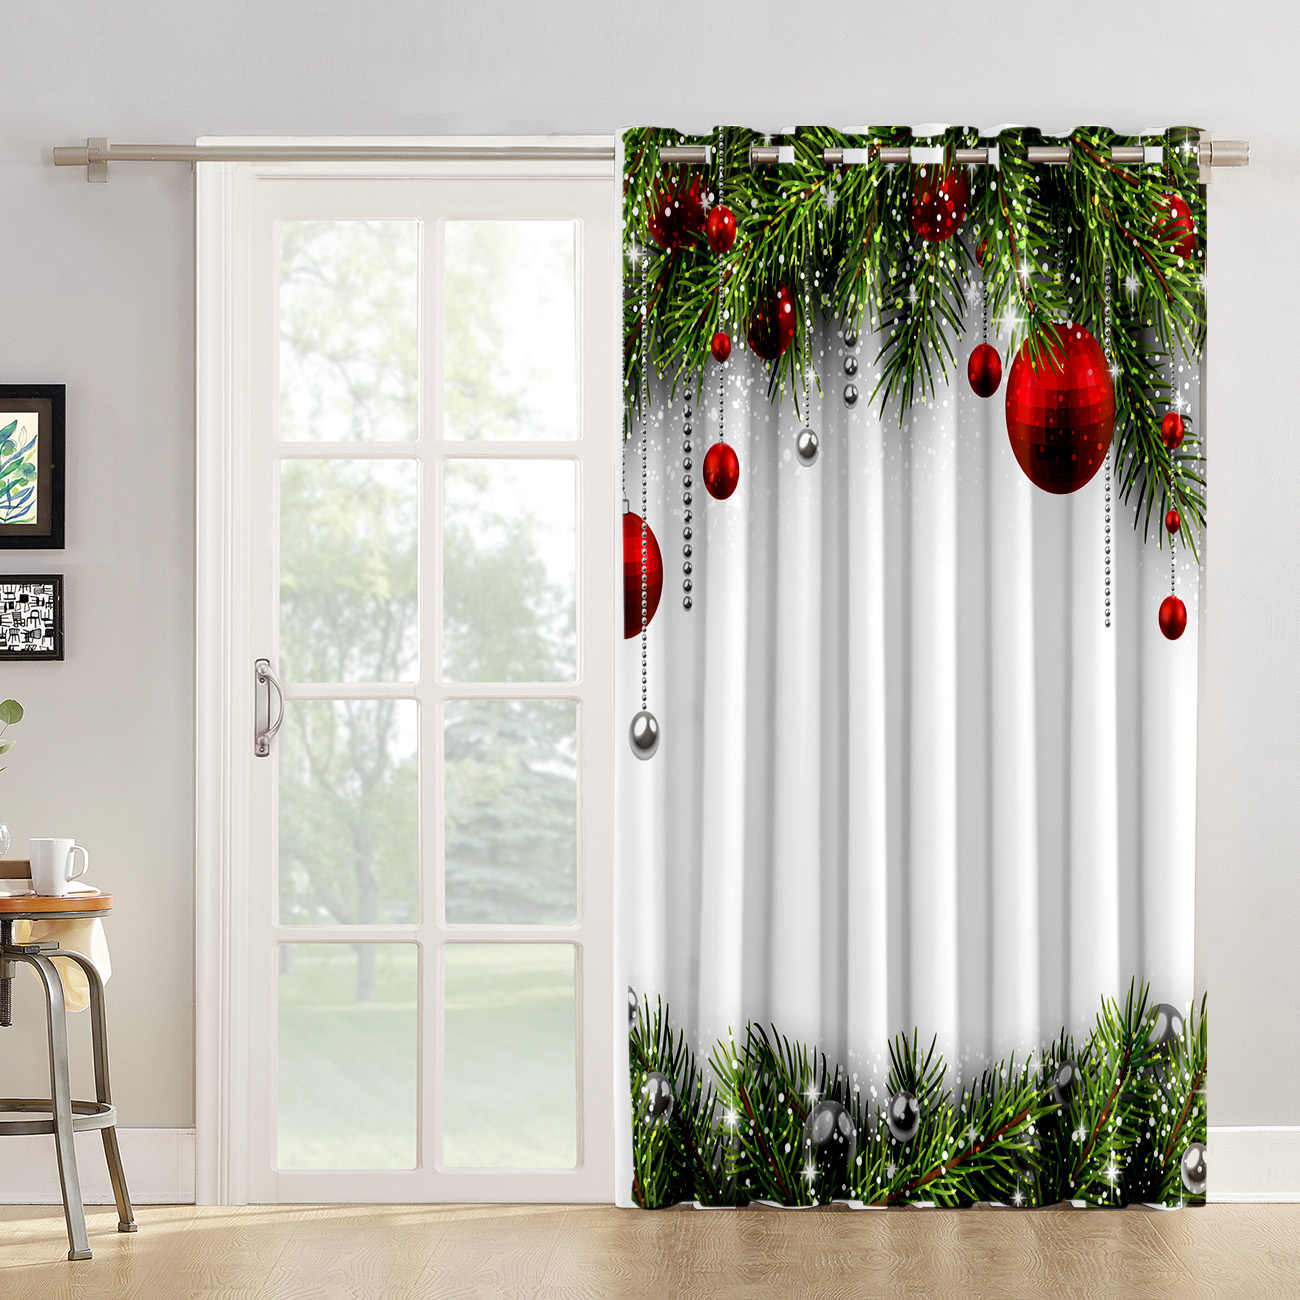 Snowing Winter Christmas Holiday Room Curtains Large Window Living Room Curtains Kitchen Indoor Fabric Window Treatment Ideas Curtains Aliexpress